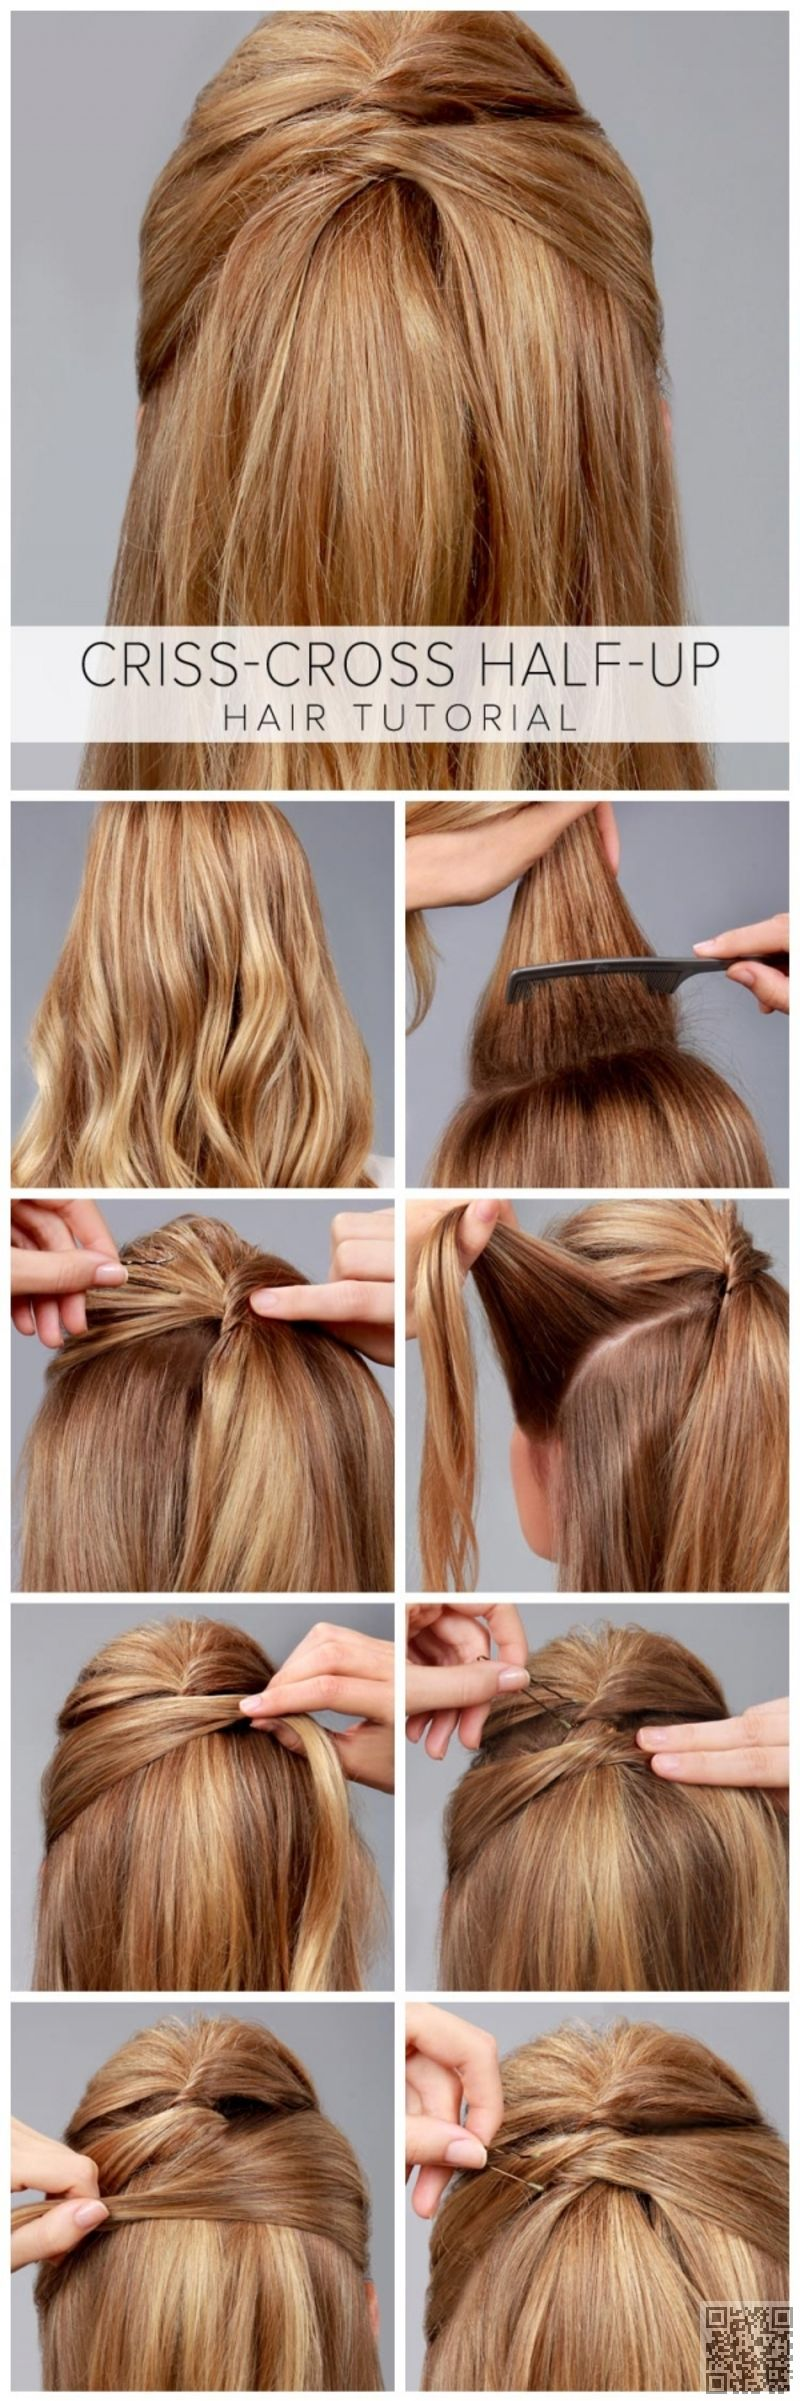 7 Criss Cross Half up So Sweet for Summer Try These 23 Half